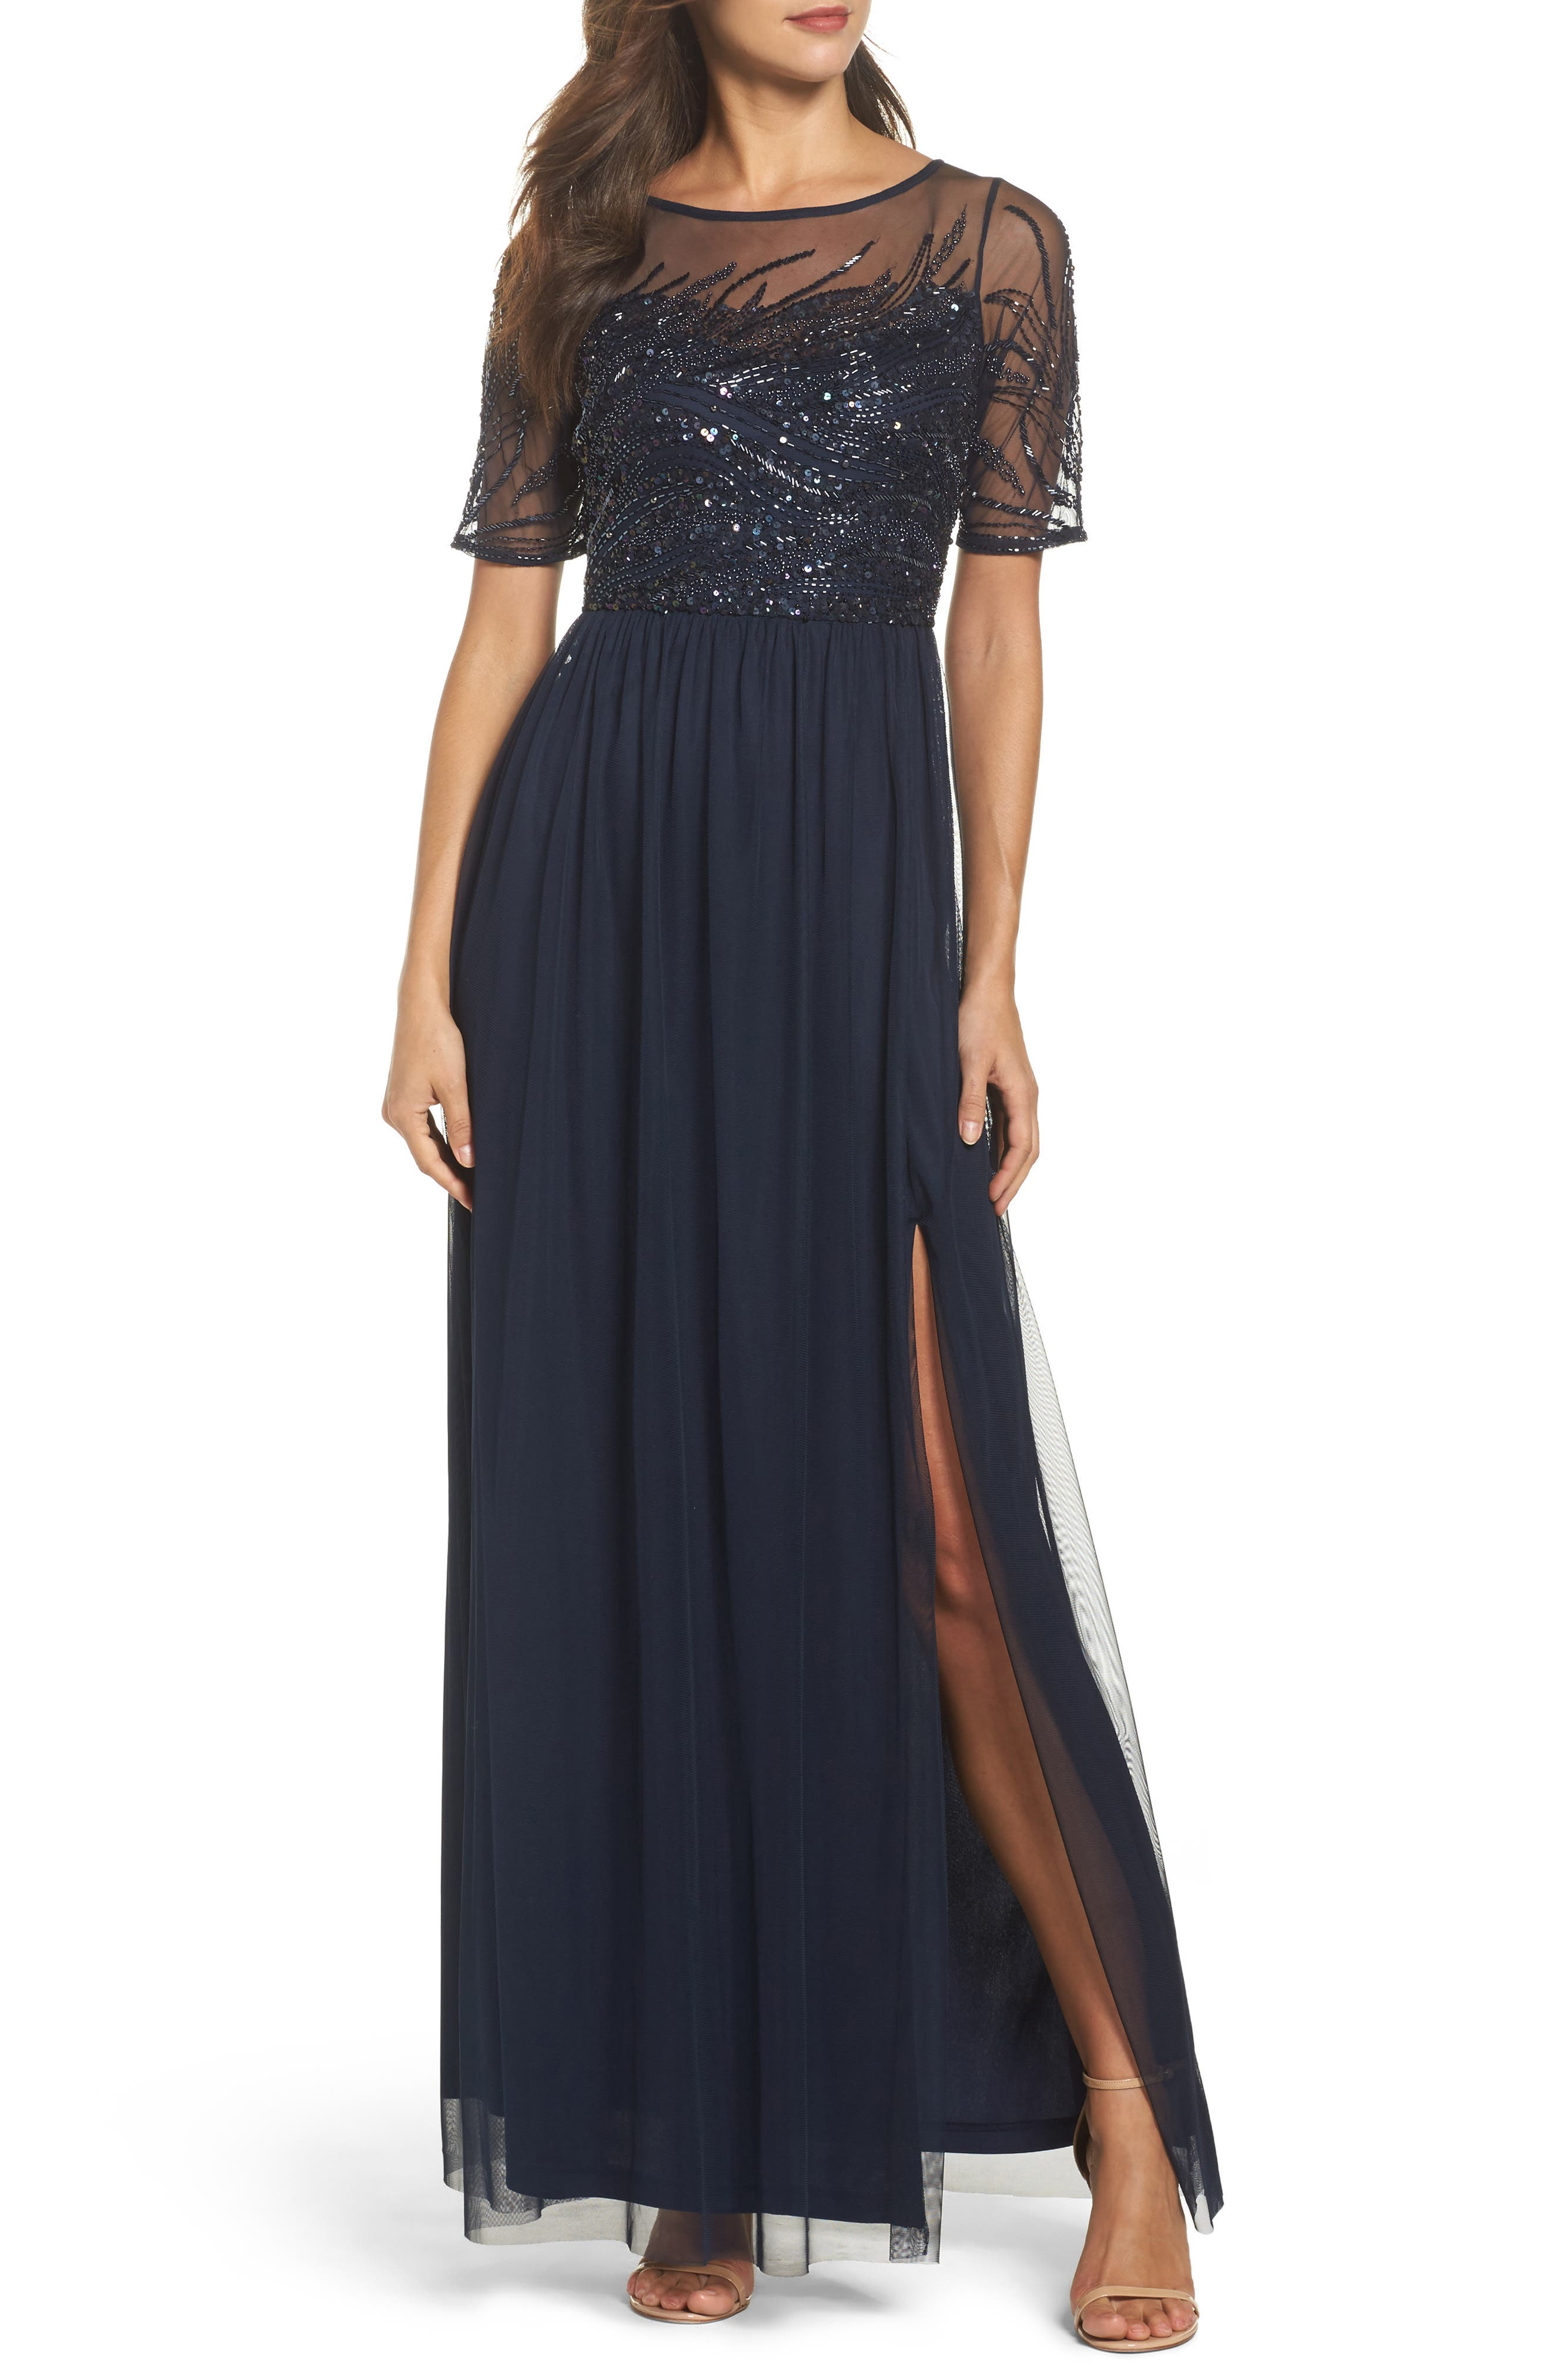 Alternate Image 1 Selected - Adrianna Papell Beaded Bodice Mesh Gown (Regular & Petite)